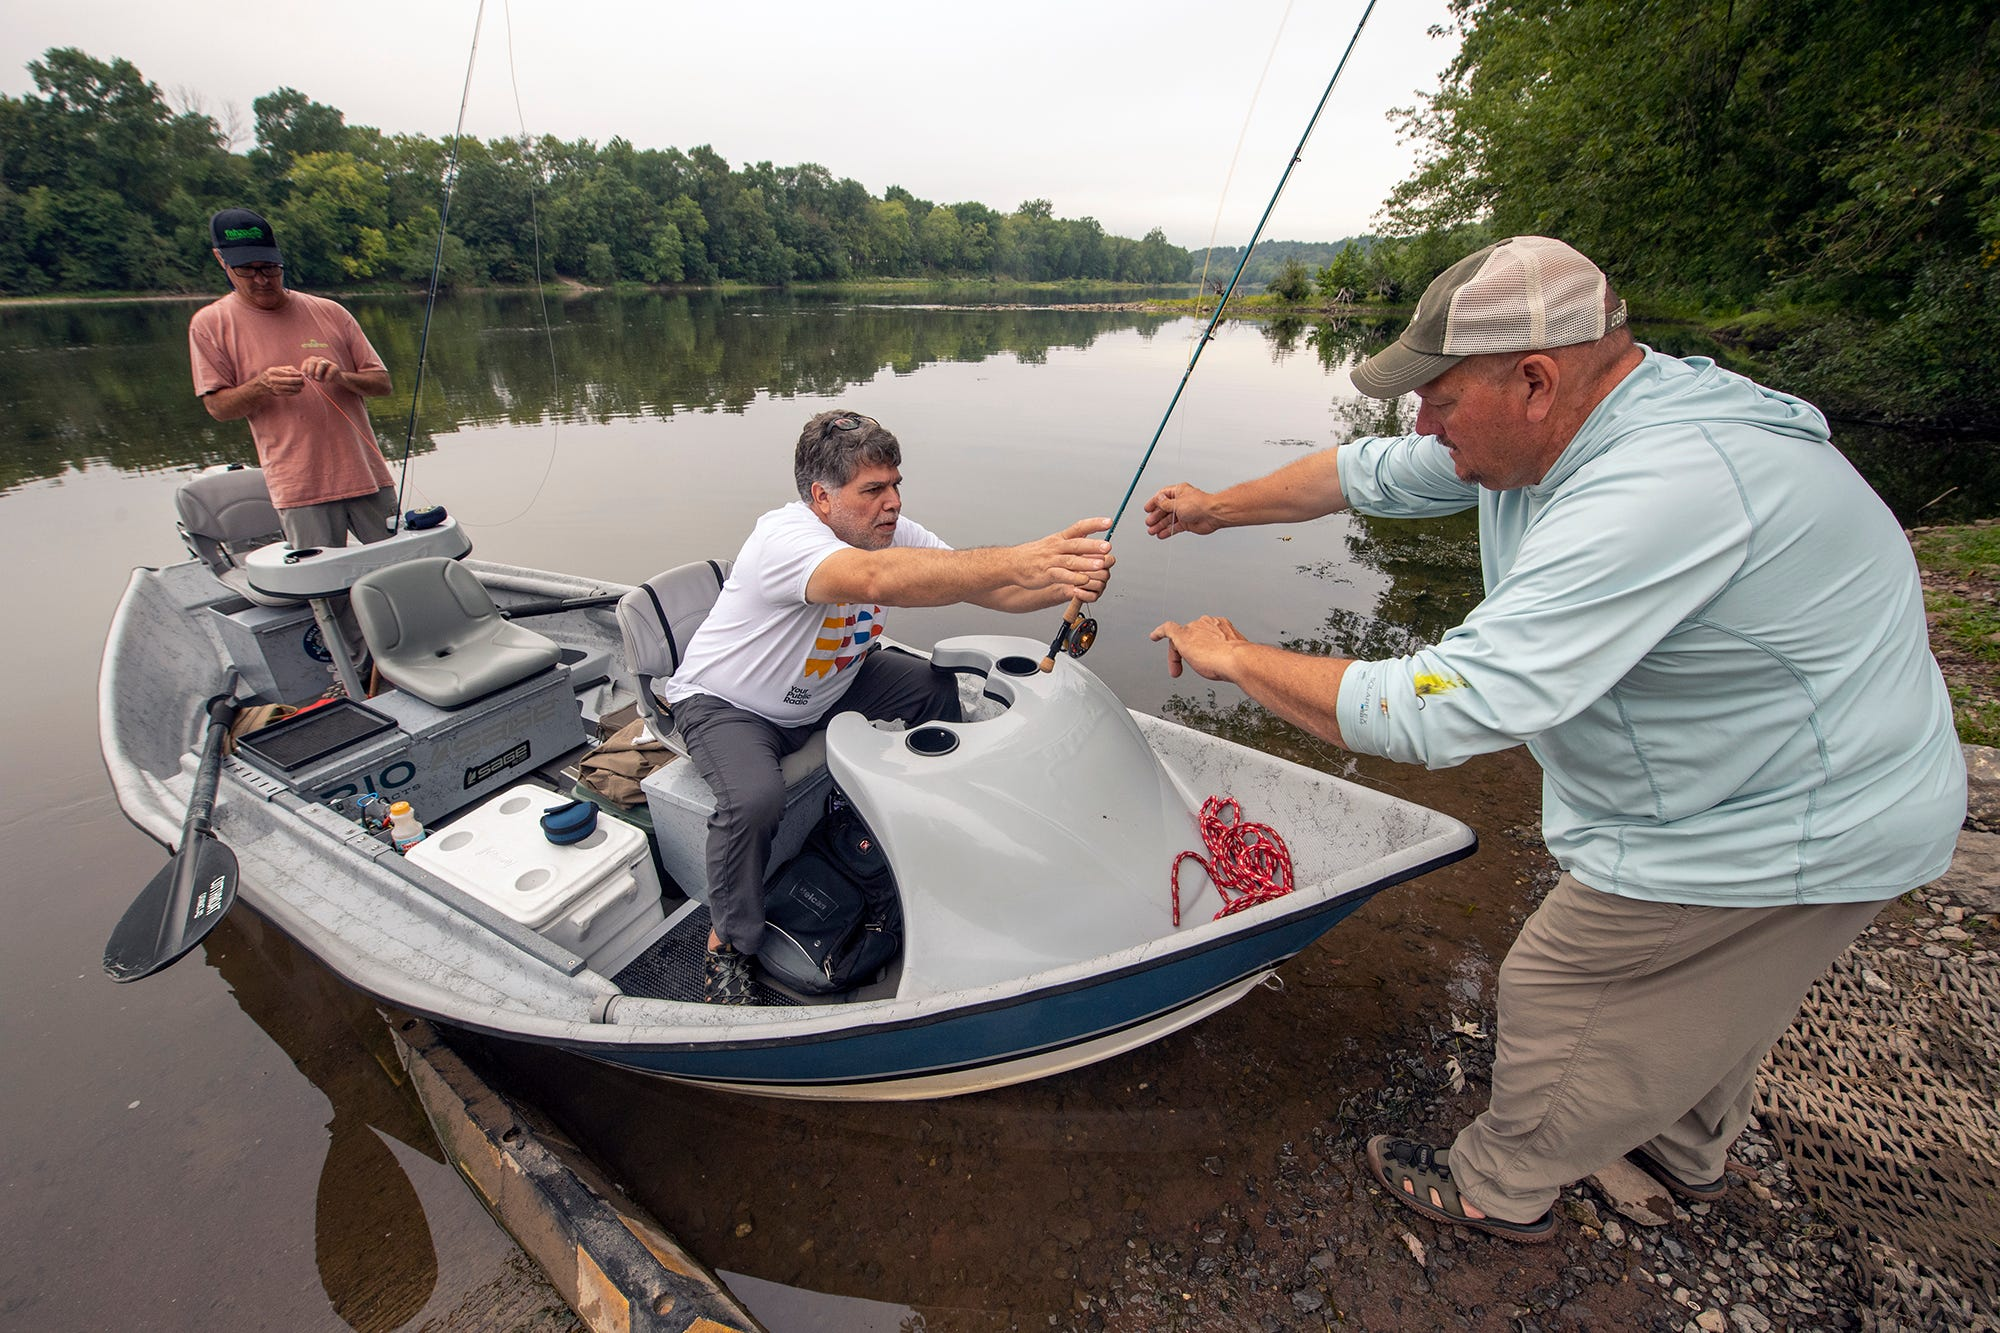 From right, Brian Shumaker helps Scott Wehage, 52, from Jarrettsville, Md. and Mike Stotler, 50, from Forrest Hill, Md. board his boat for a fishing trip on the Juniata River near Newport, Pa. The Juniata is a major tributary of the Susquehanna River.